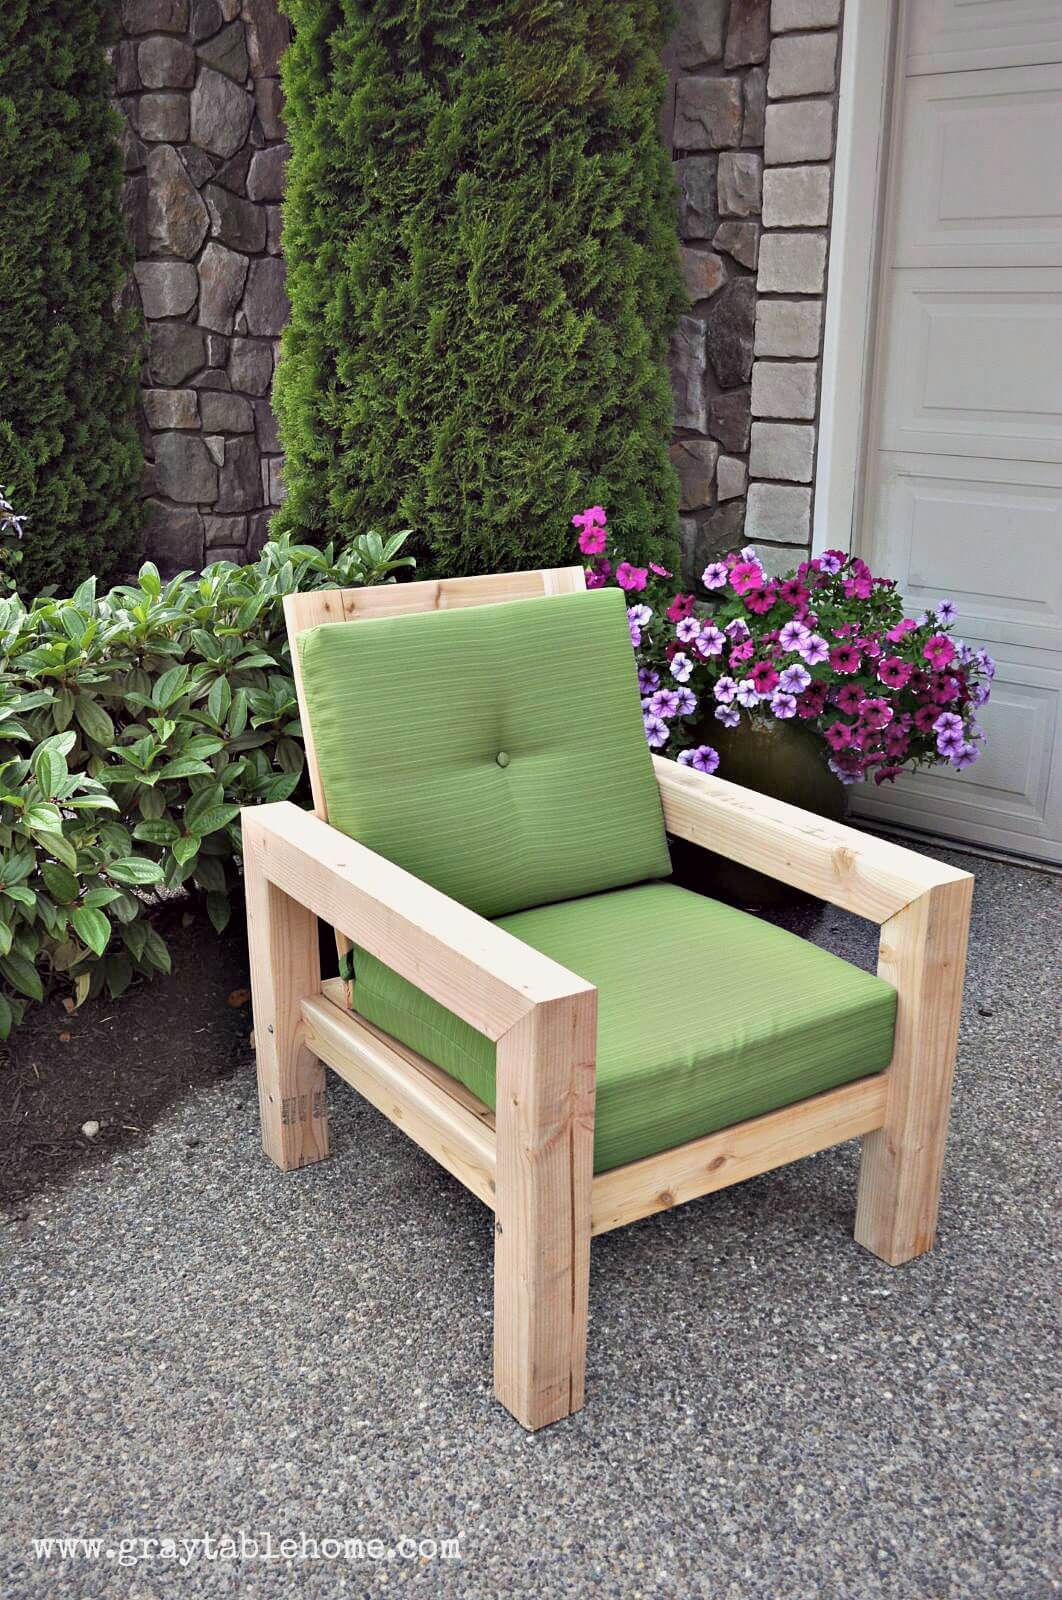 Best diy outdoor furniture projects ideas and designs